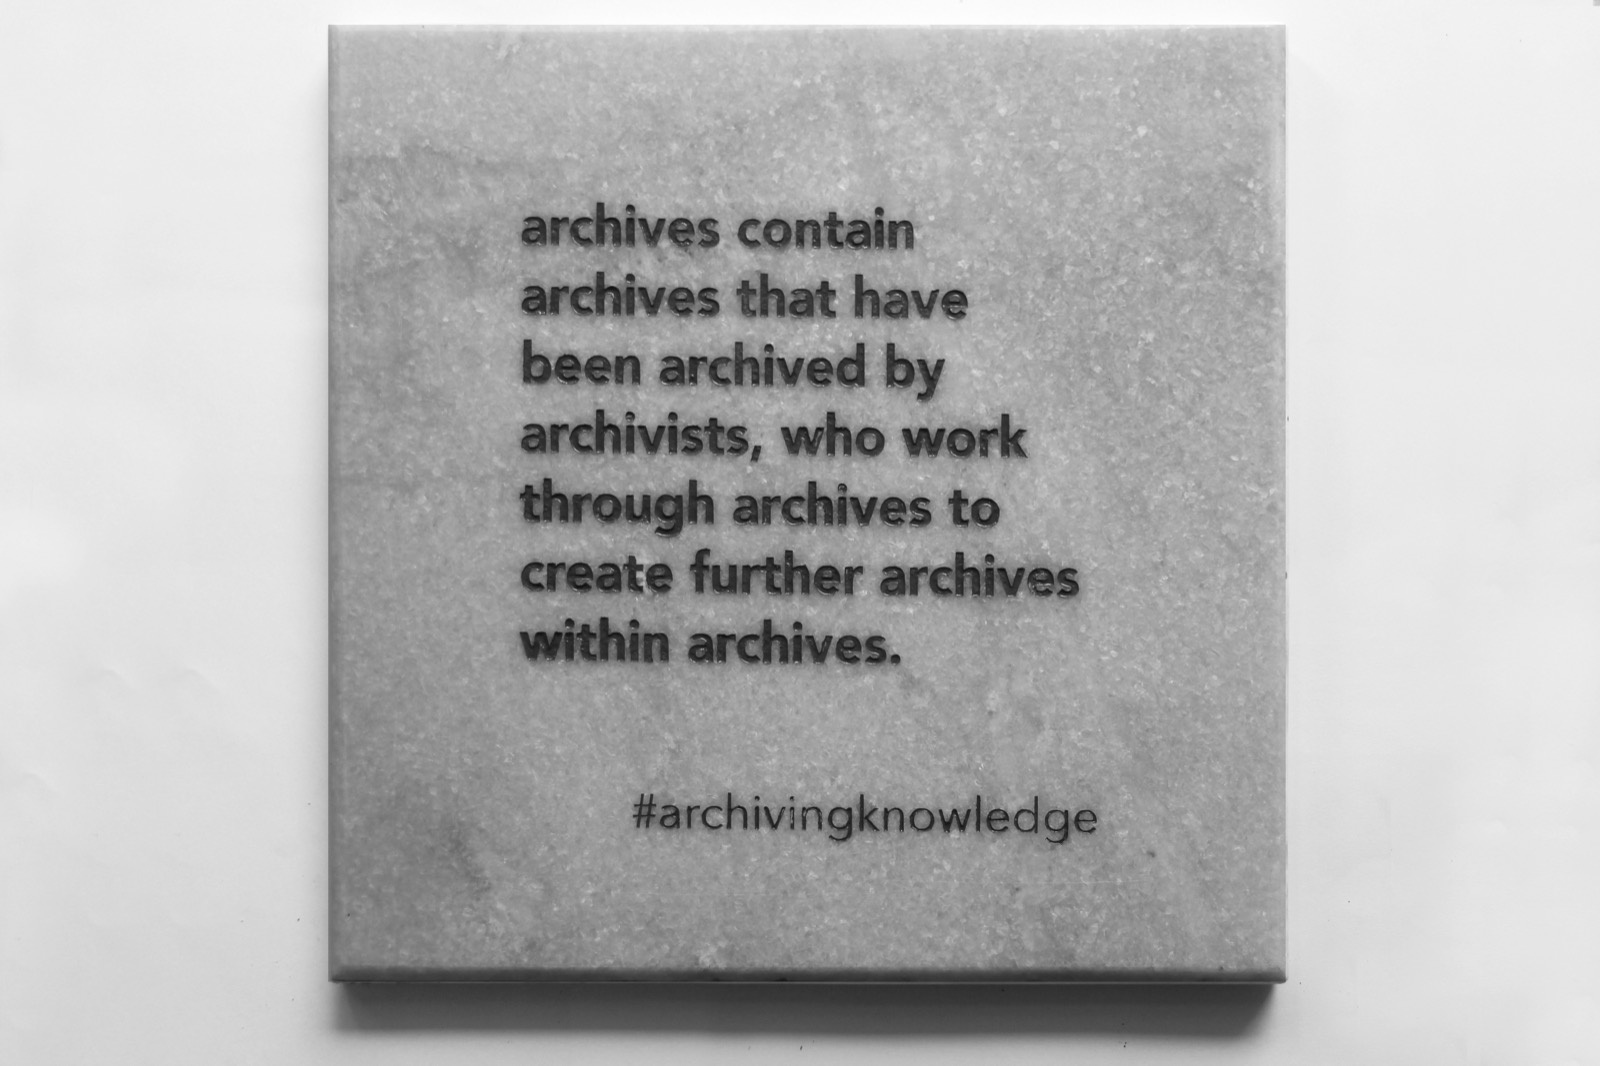 Archives contain archives that have been archived by archivists, who work through archives to create further archives within archives, From the series: Archiving Knowledge, hand engraved marble, 2018